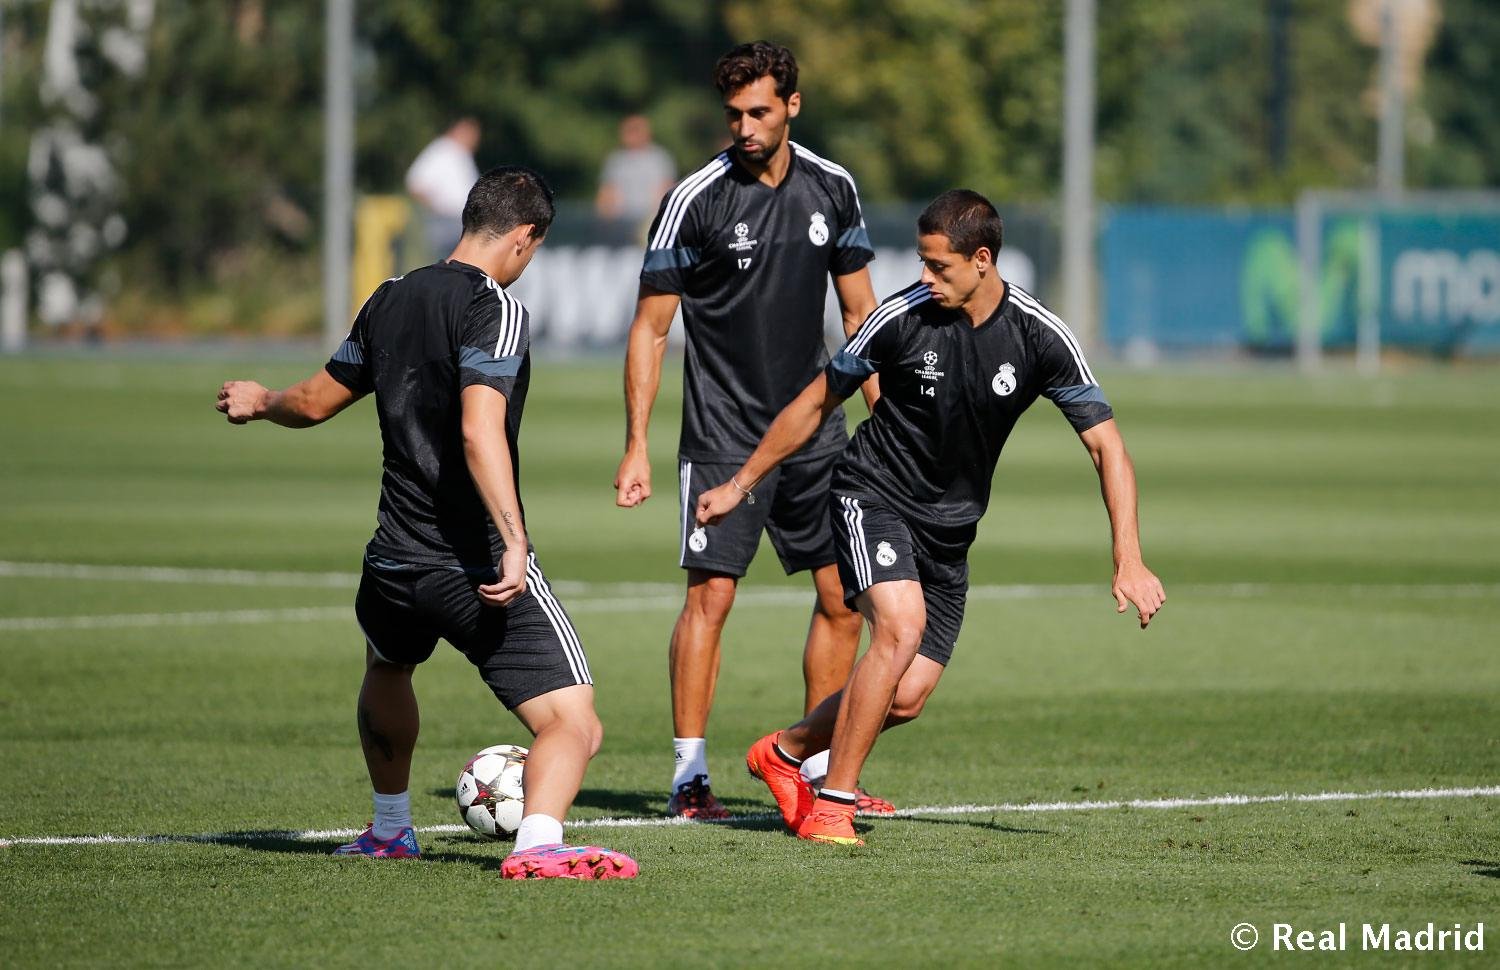 Real Madrid - Entrenamiento del Real Madrid - 15-09-2014